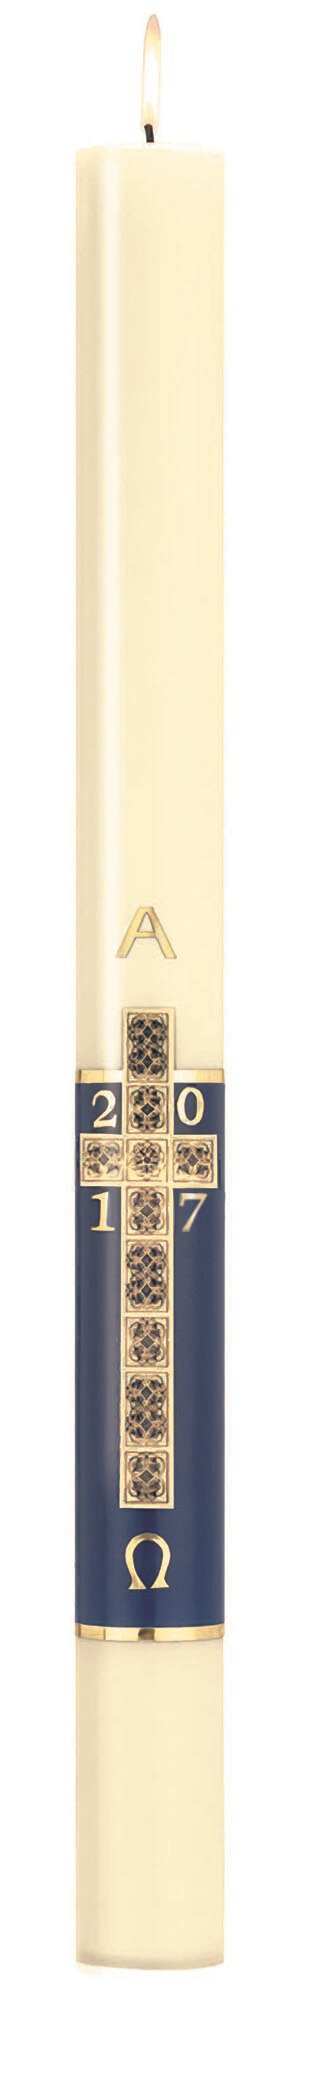 No 15 Holy Cross Paschal Candle